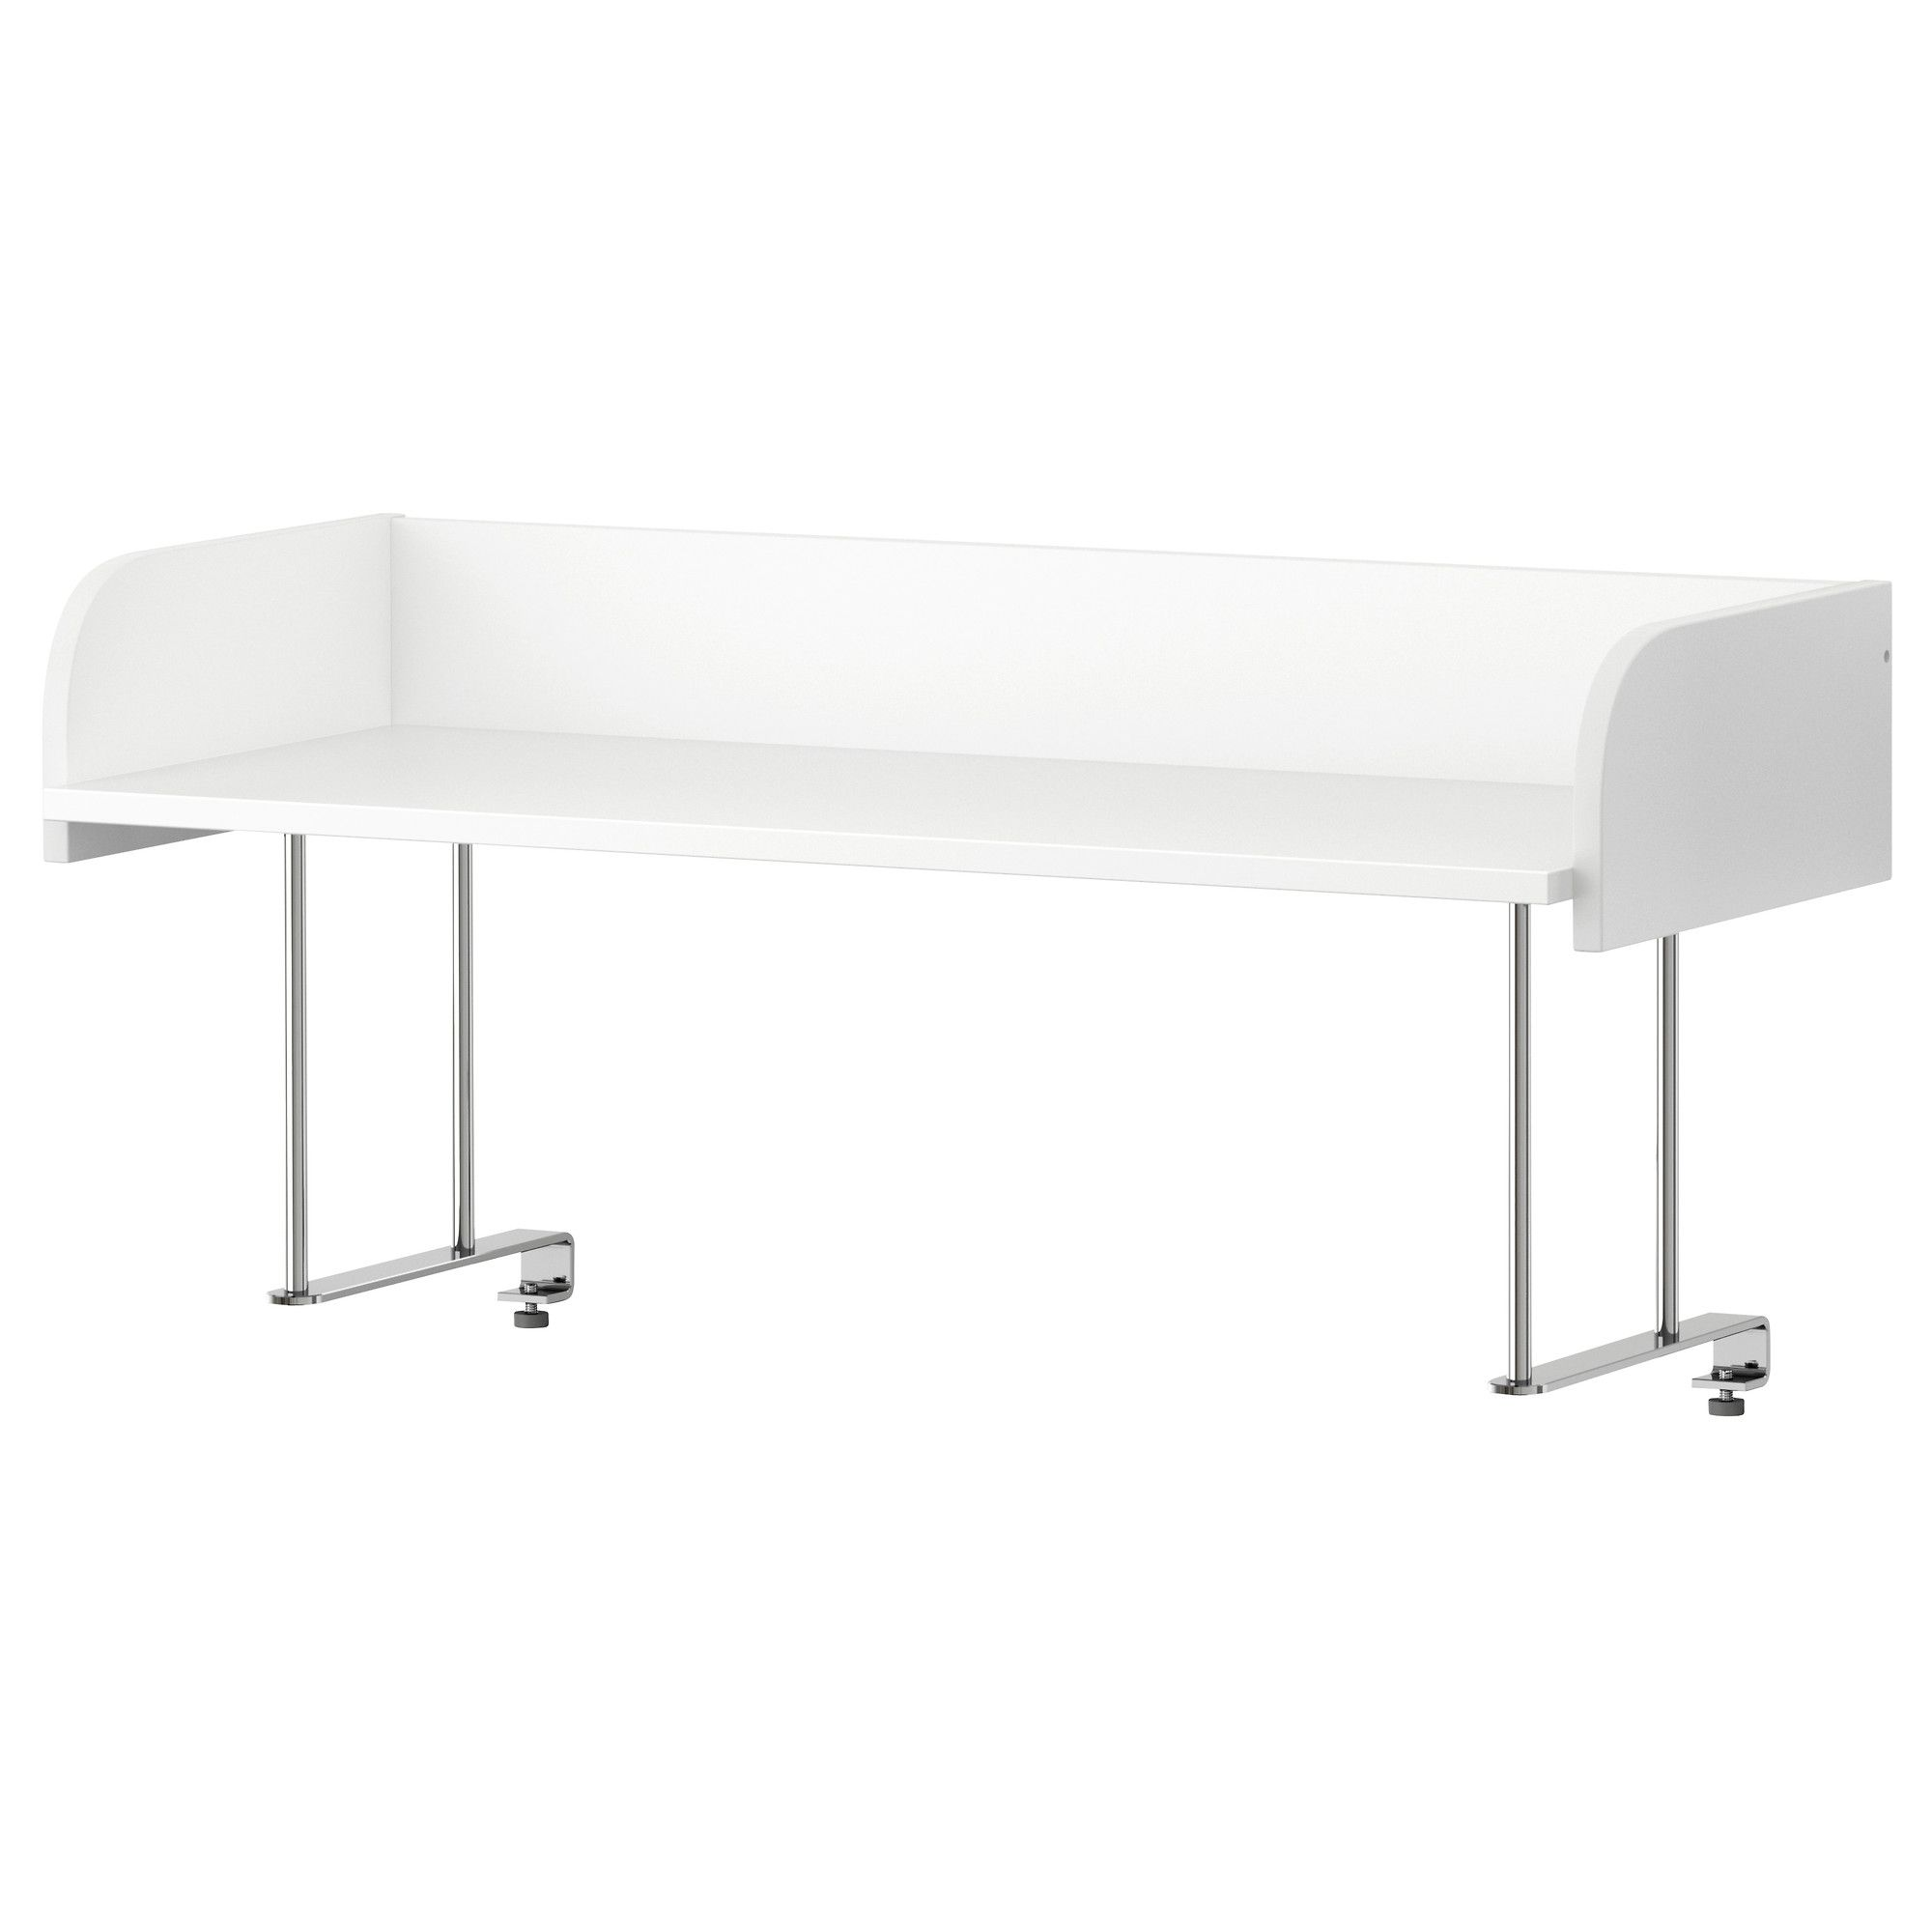 Ikea Desk Top Galant Desk Top Shelf White Ikea For The Home Ikea Galant